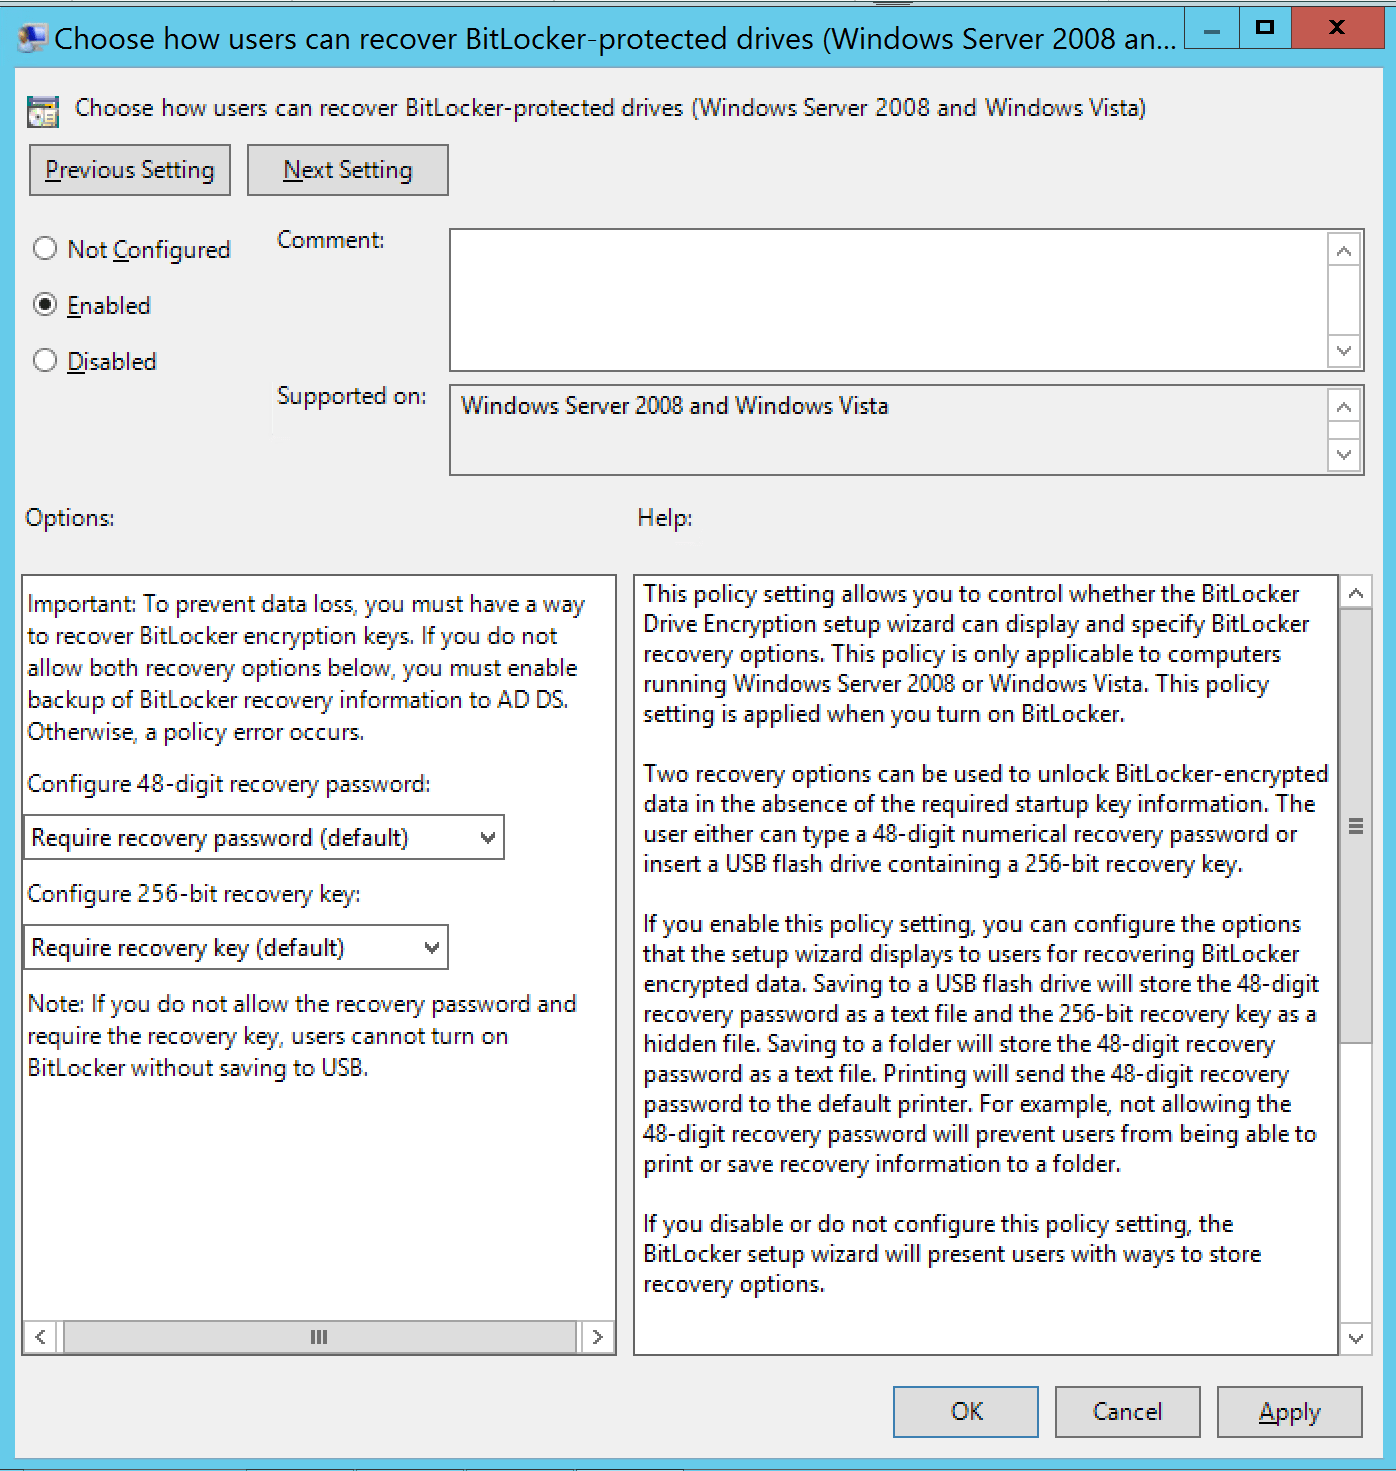 Choose how users can recover Bitlocker